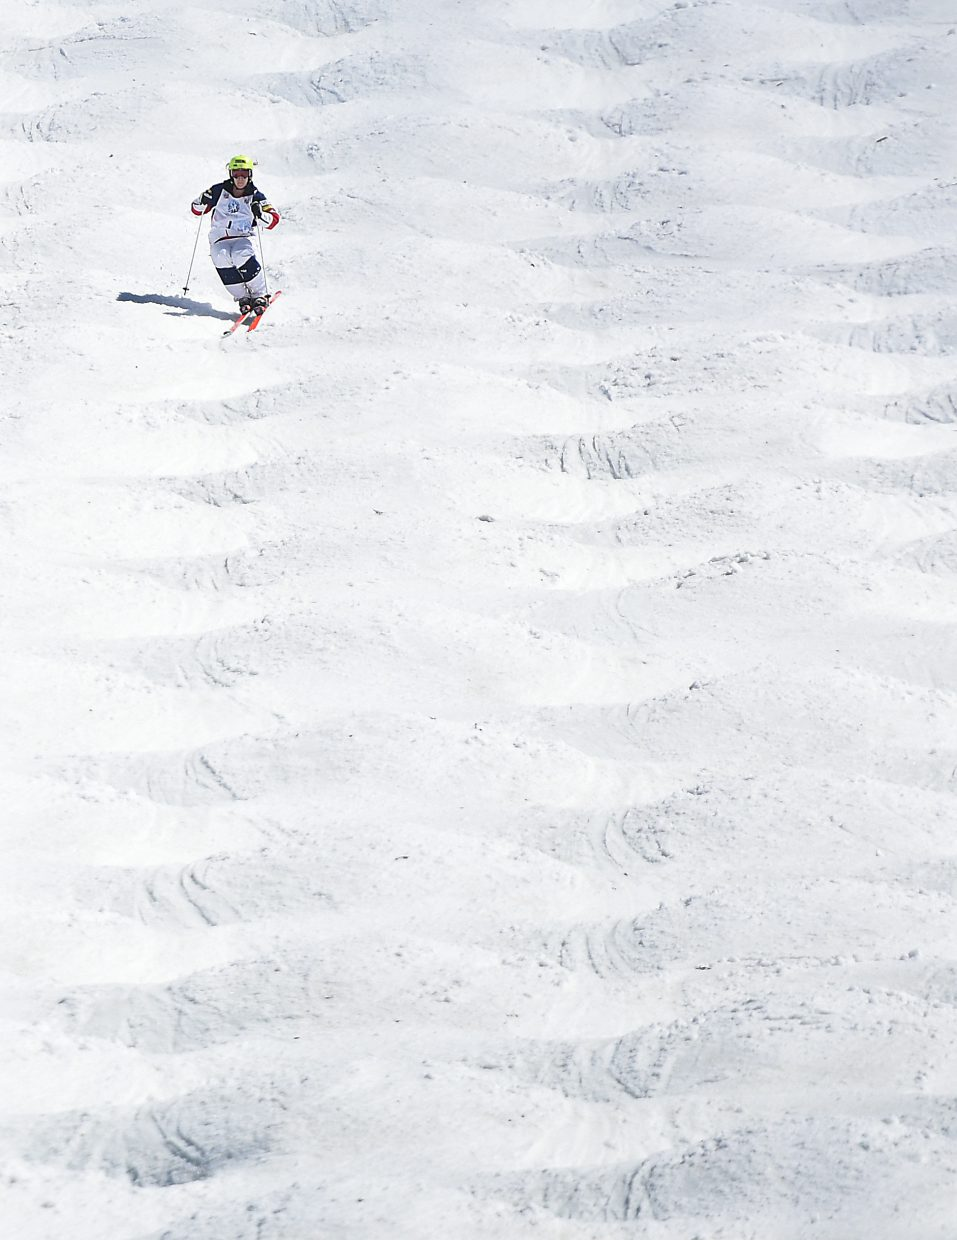 Hannah Kearney rips through the moguls Friday on her way to a national championship.